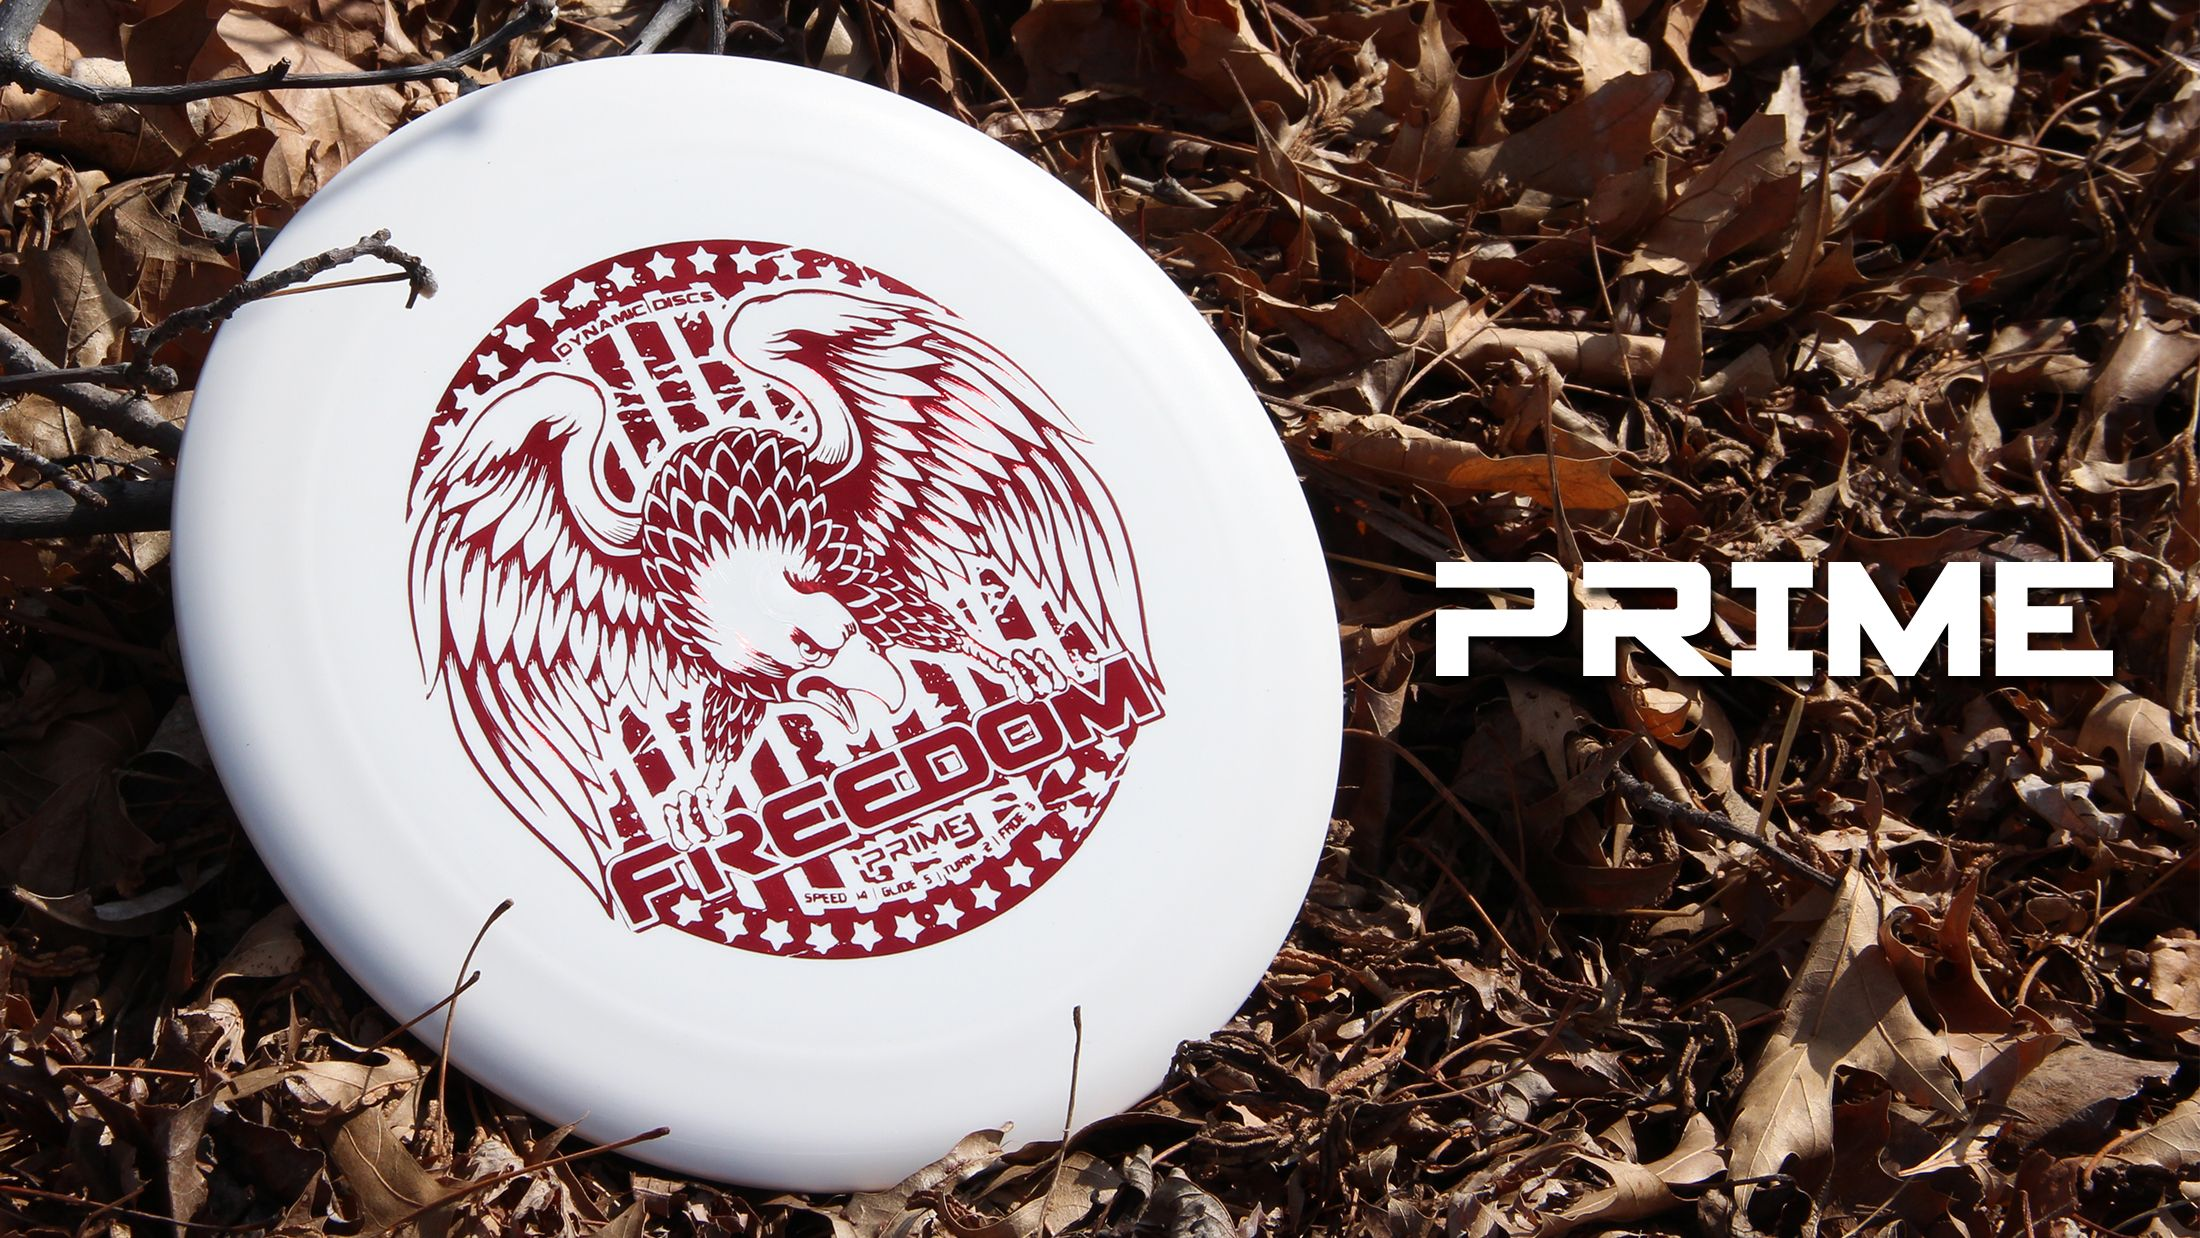 For the big arm throwers this disc will go a long way on